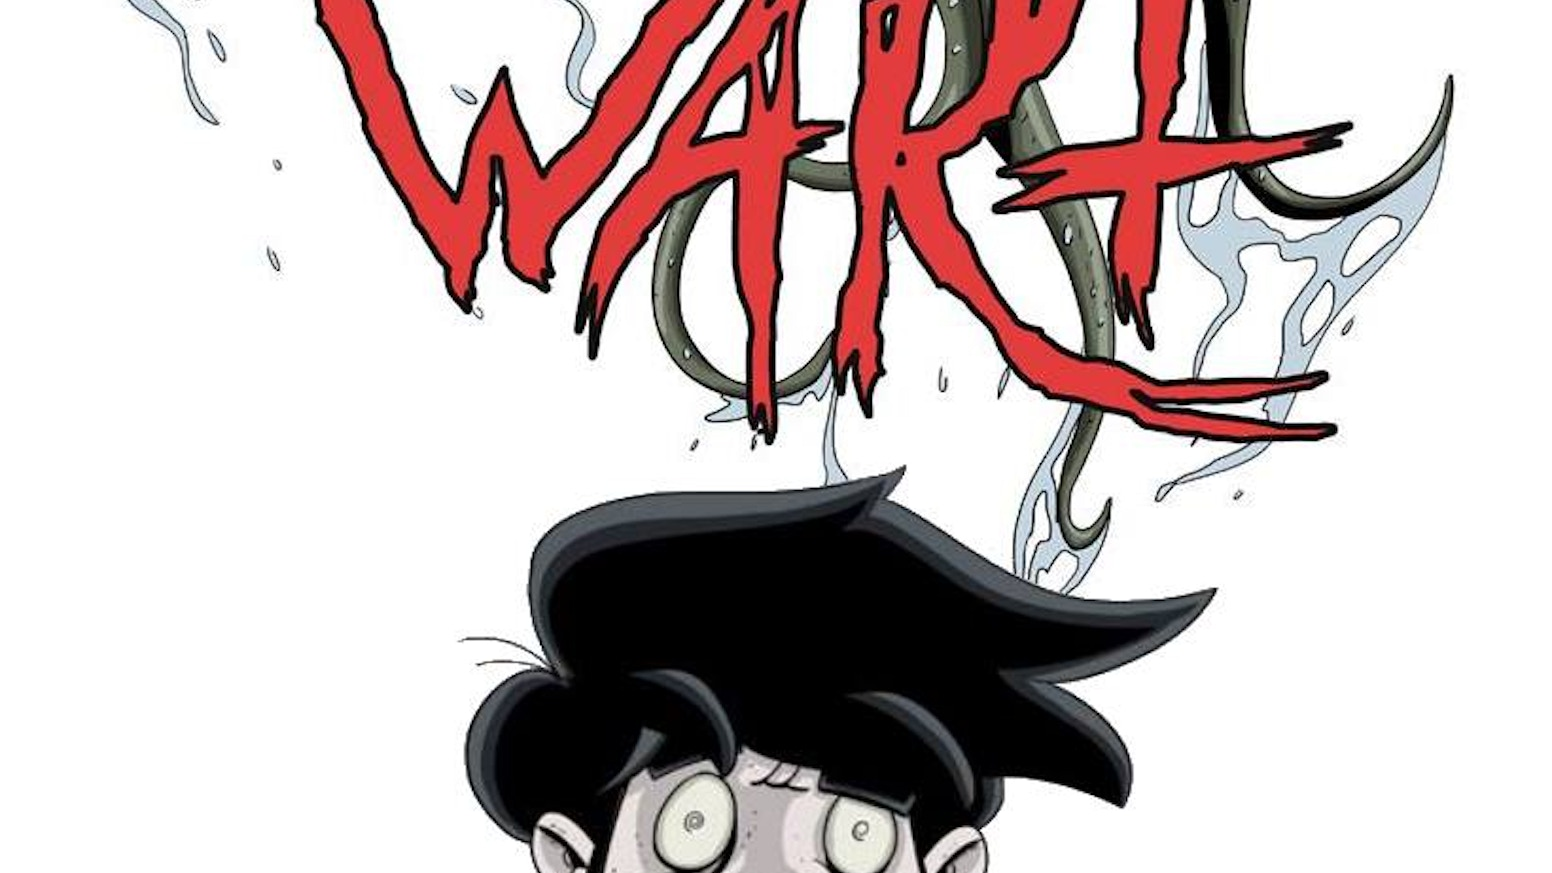 WART - The Comic. Books One and Two of the Lovecraft-inspired cosmic horror comic full of giant monsters, cults and craziness.